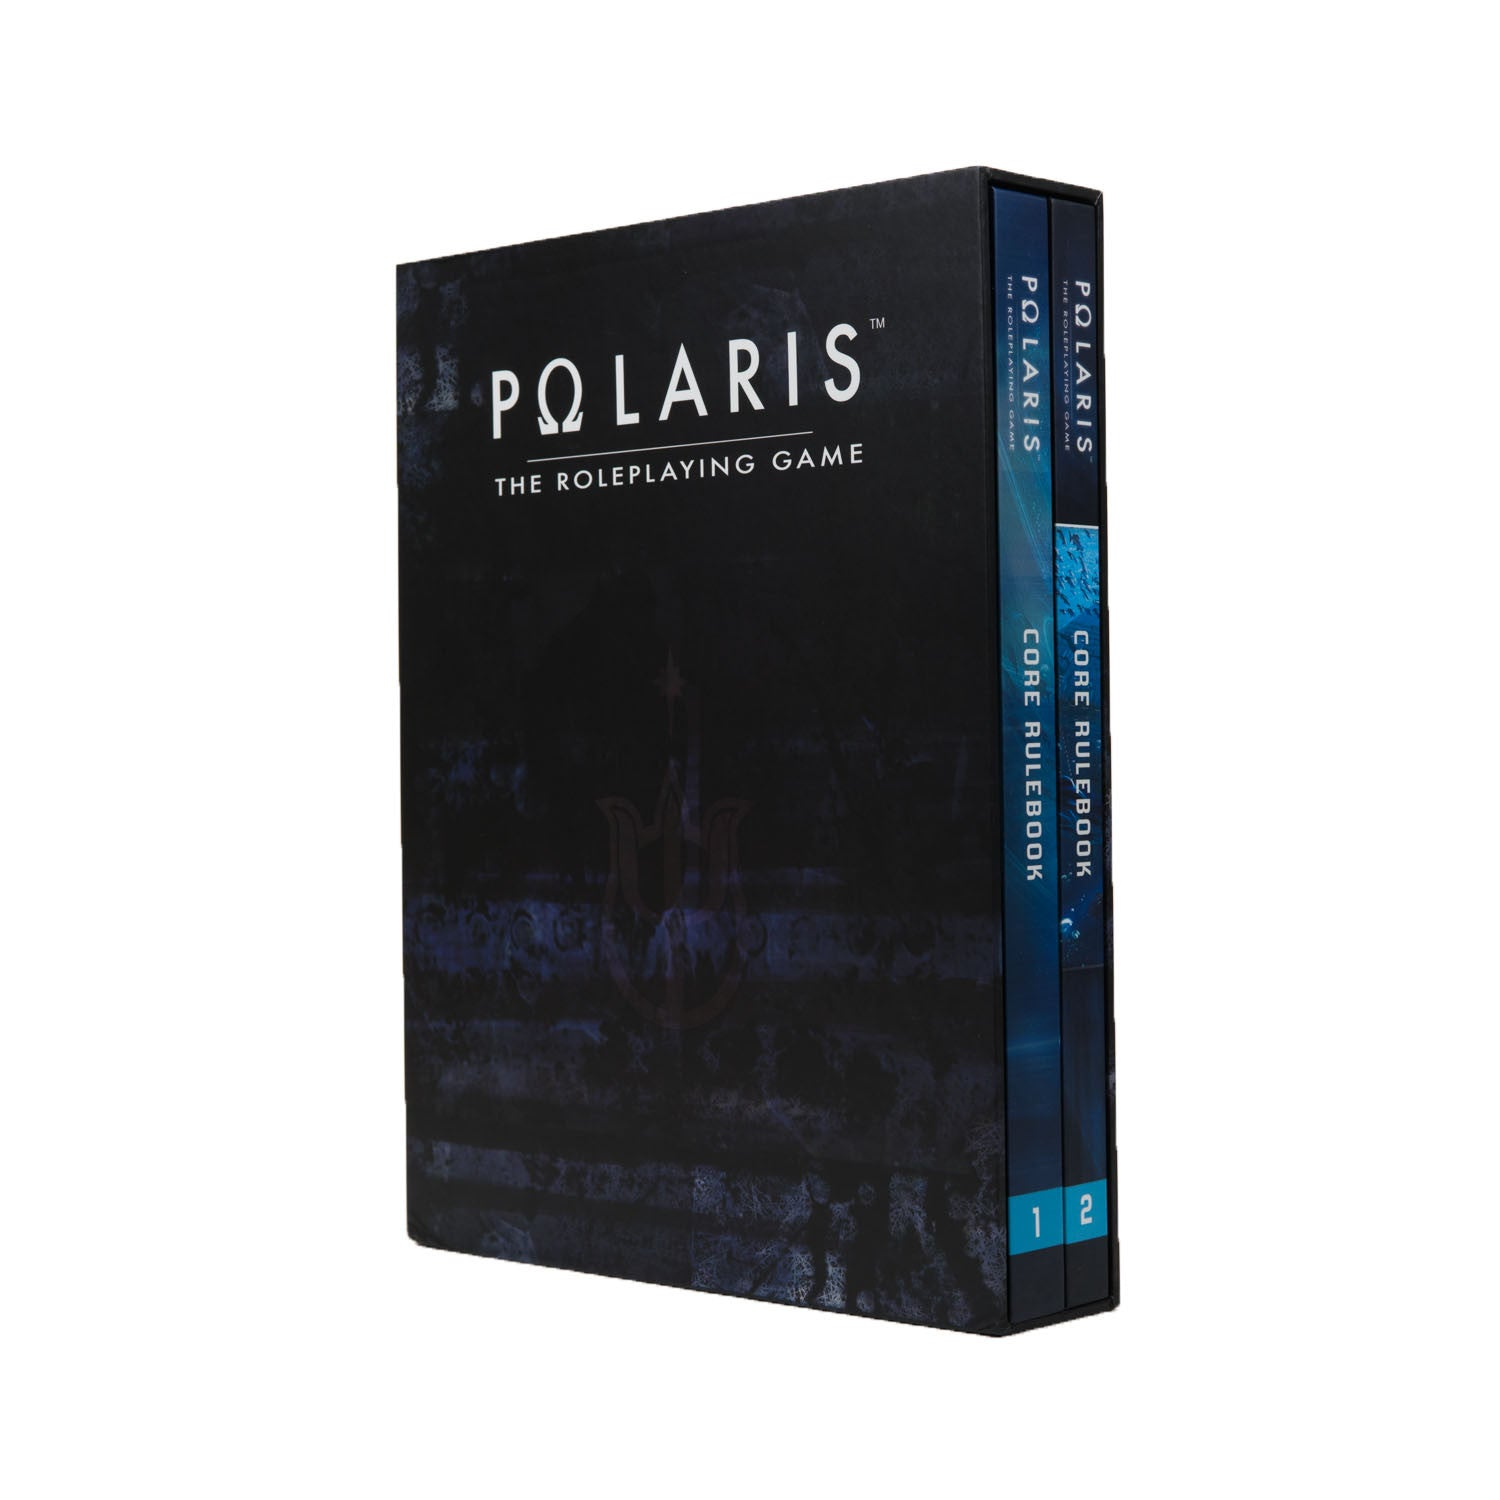 POLARIS The Roleplaying Game Core Rulebook Set (Hard Cover)